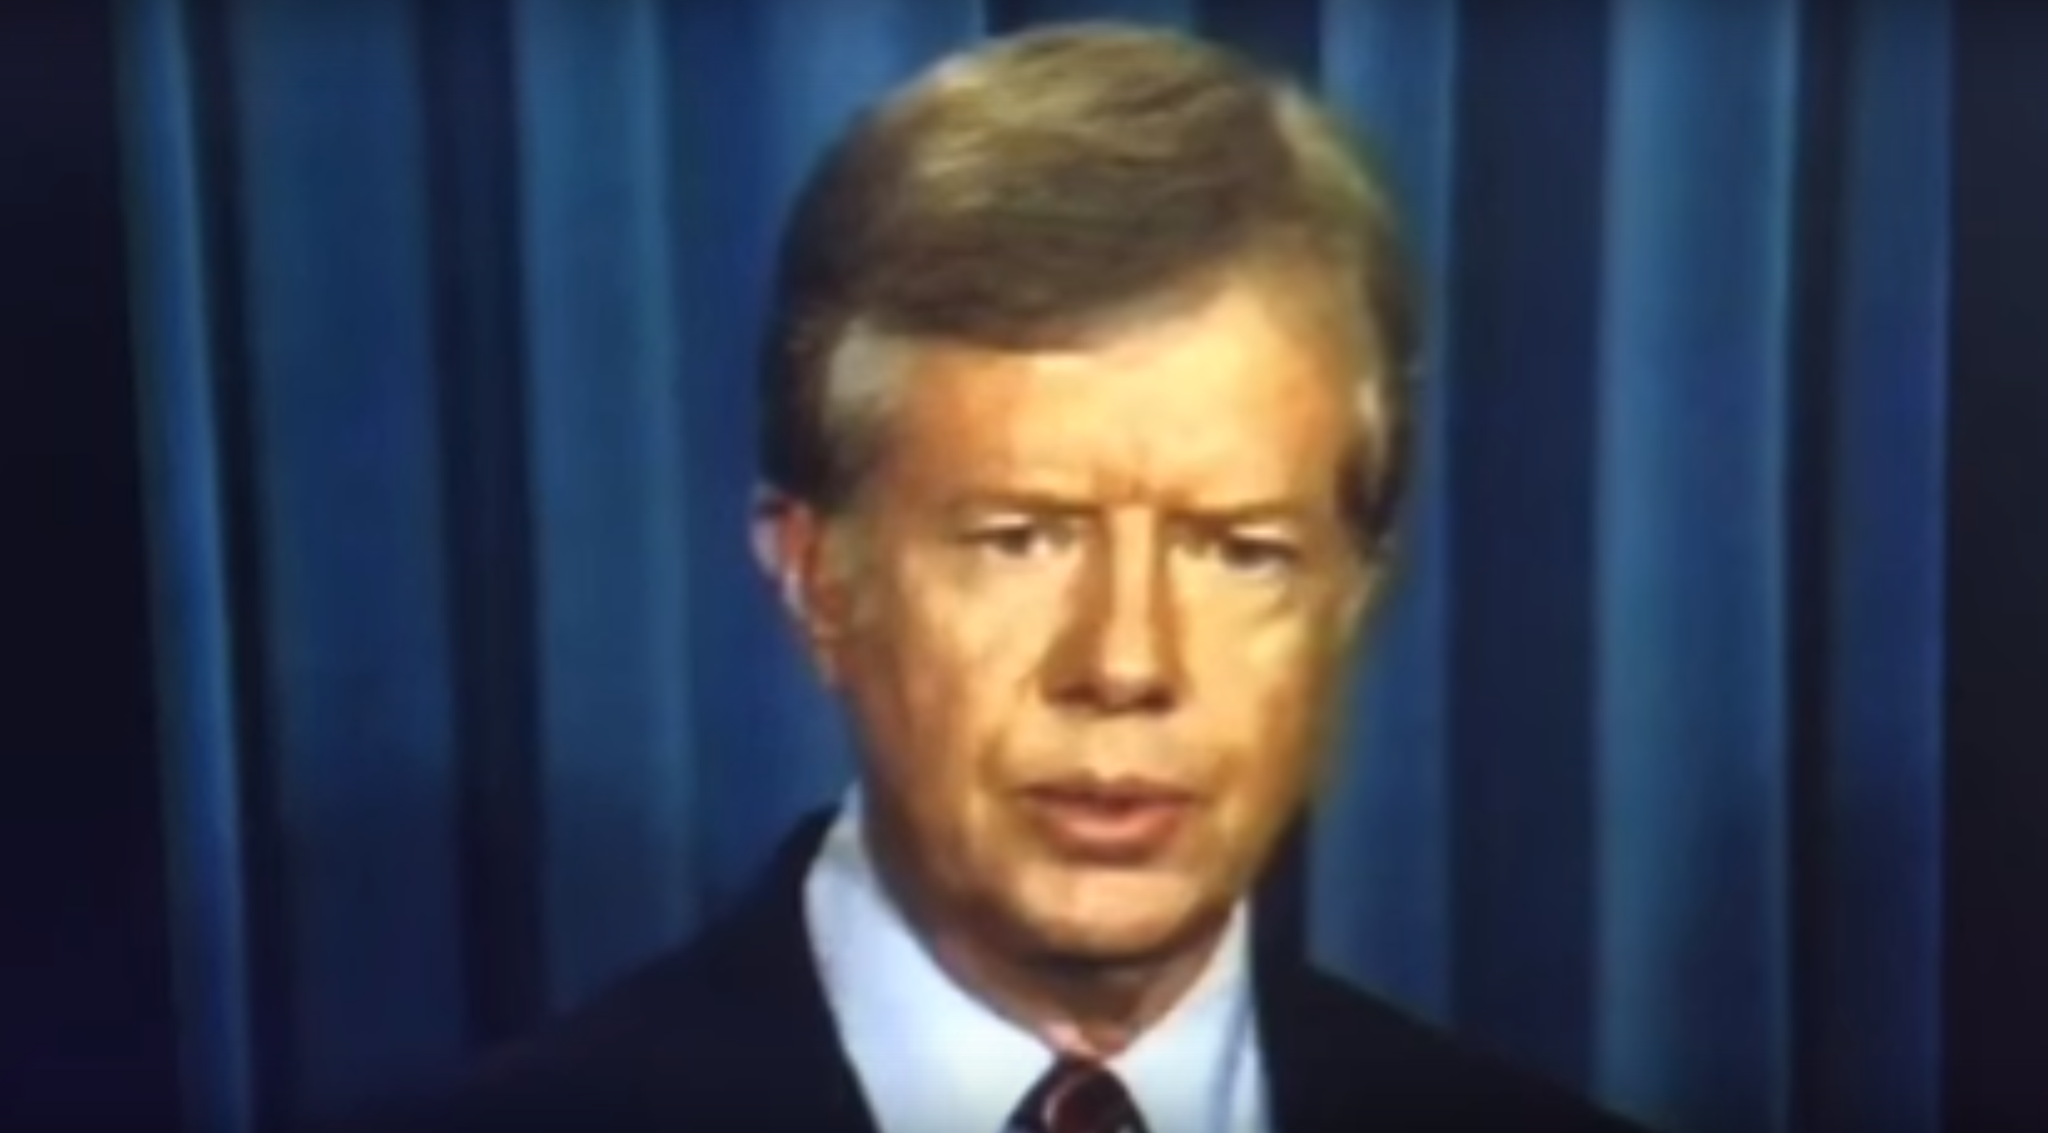 VIDEO: Jimmy Carter Bans Iranian Immigrants, Deports Students in Crisis